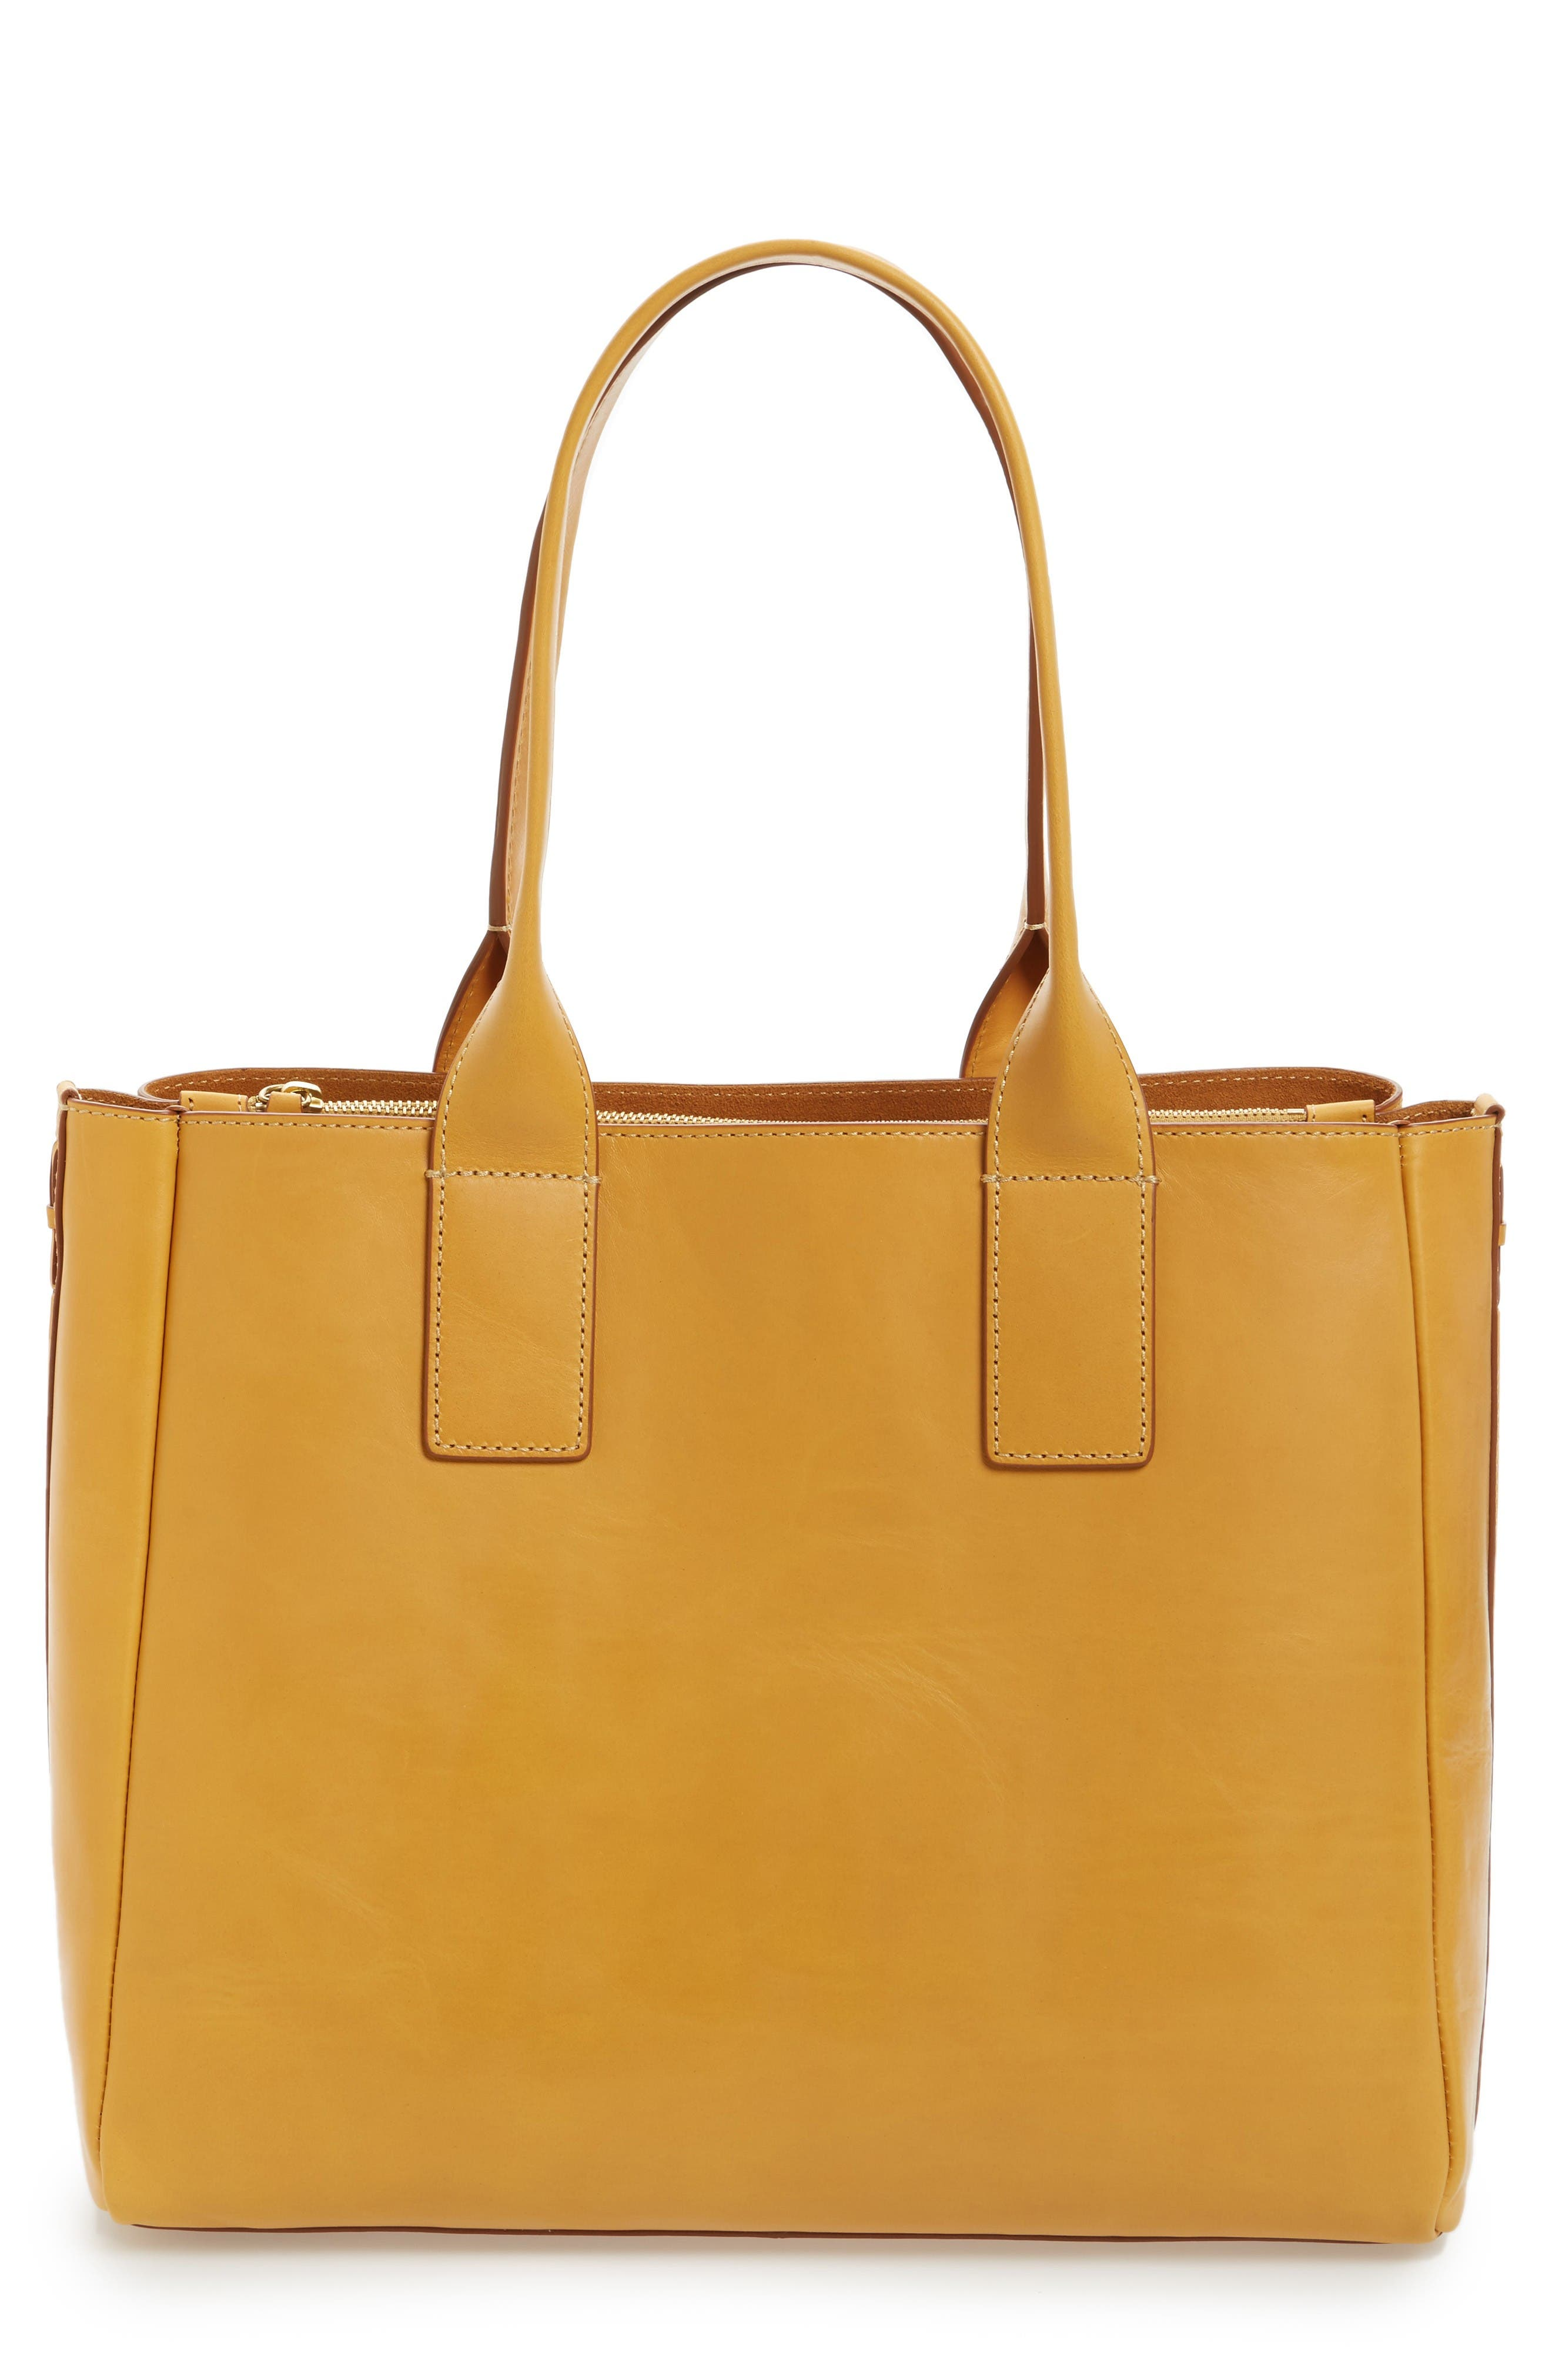 Frye Ilana Leather Tote